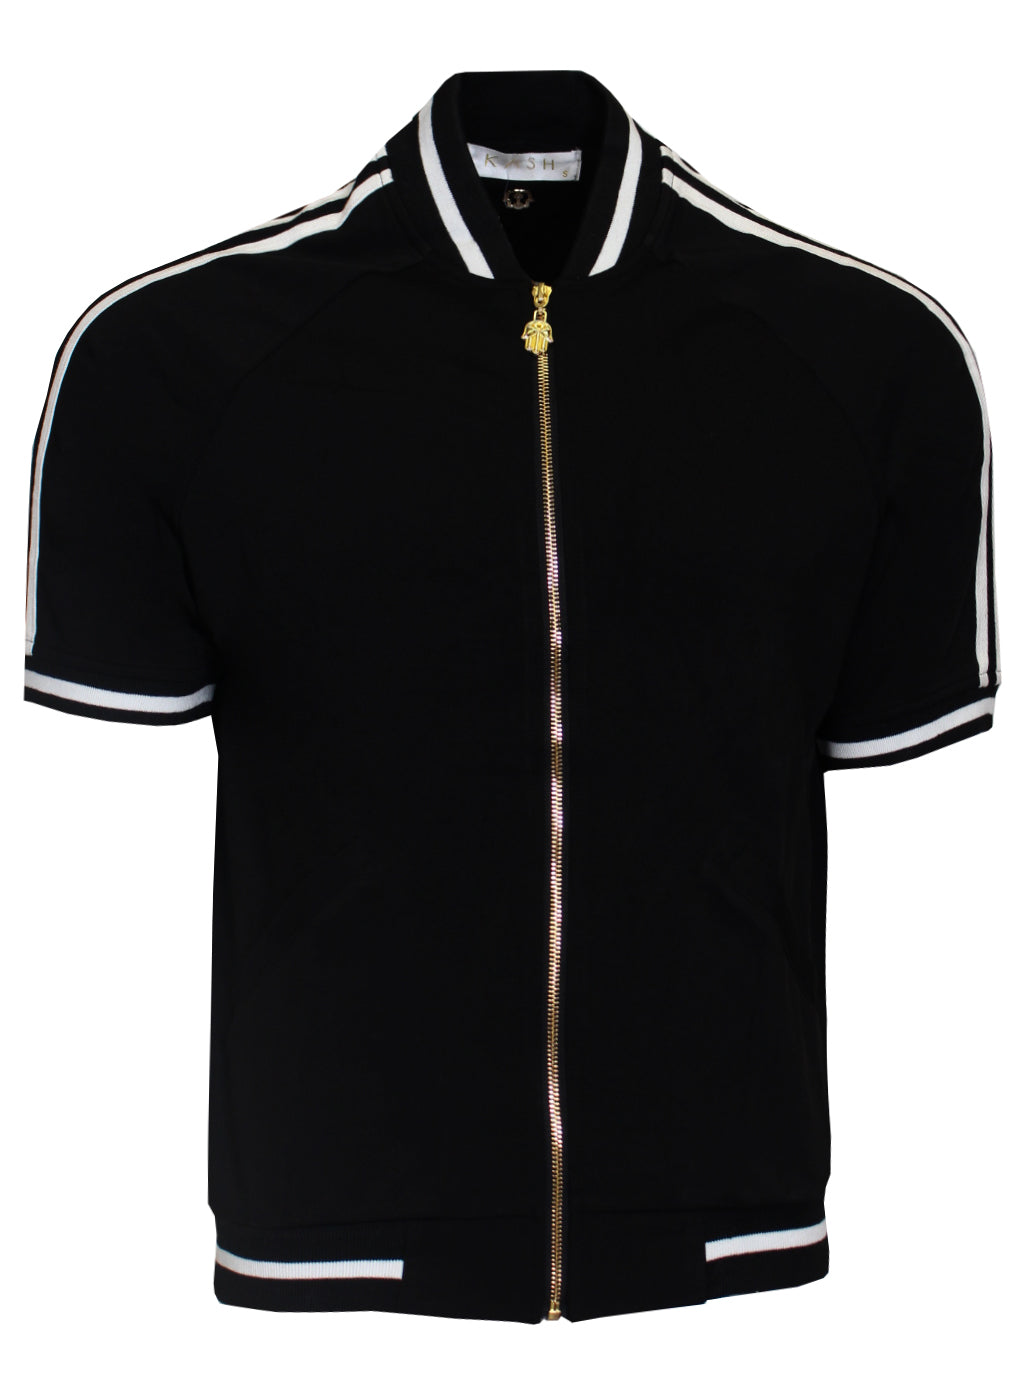 Kash Short Sleeve Jacket|Black